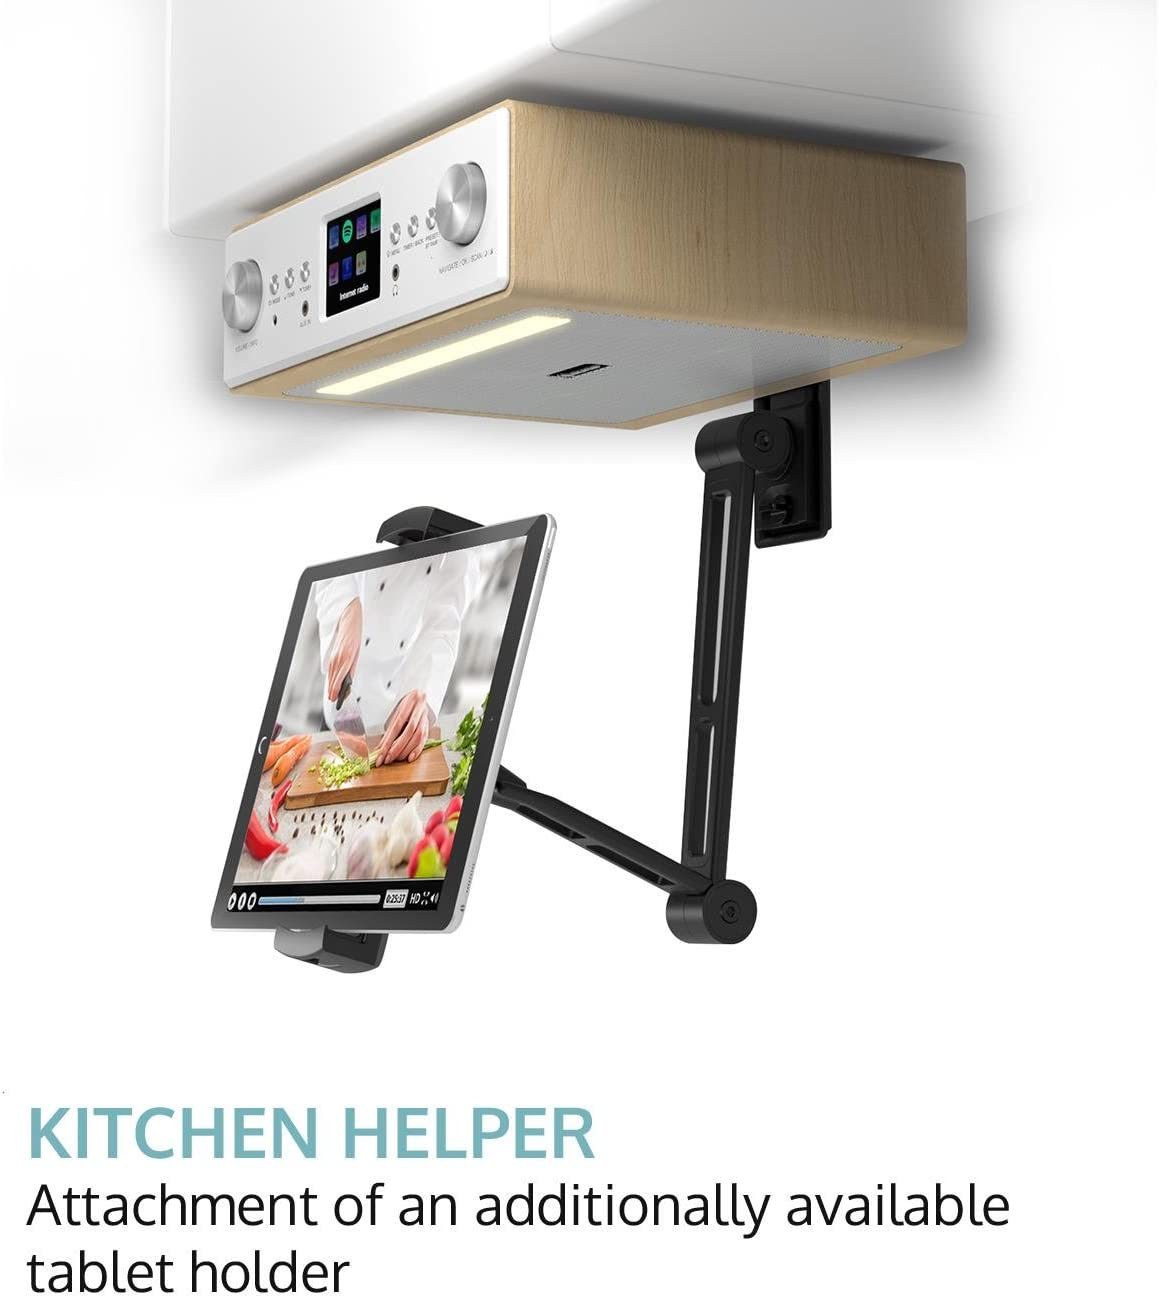 auna Connect Soundchef 2020 Edition - Radio de Cocina , Radio bajo Mueble , Digital , Internet , Dab+ , FM , Soporte para Tablet , Altavoces Integrados , Mando a Distancia , Madera Clara